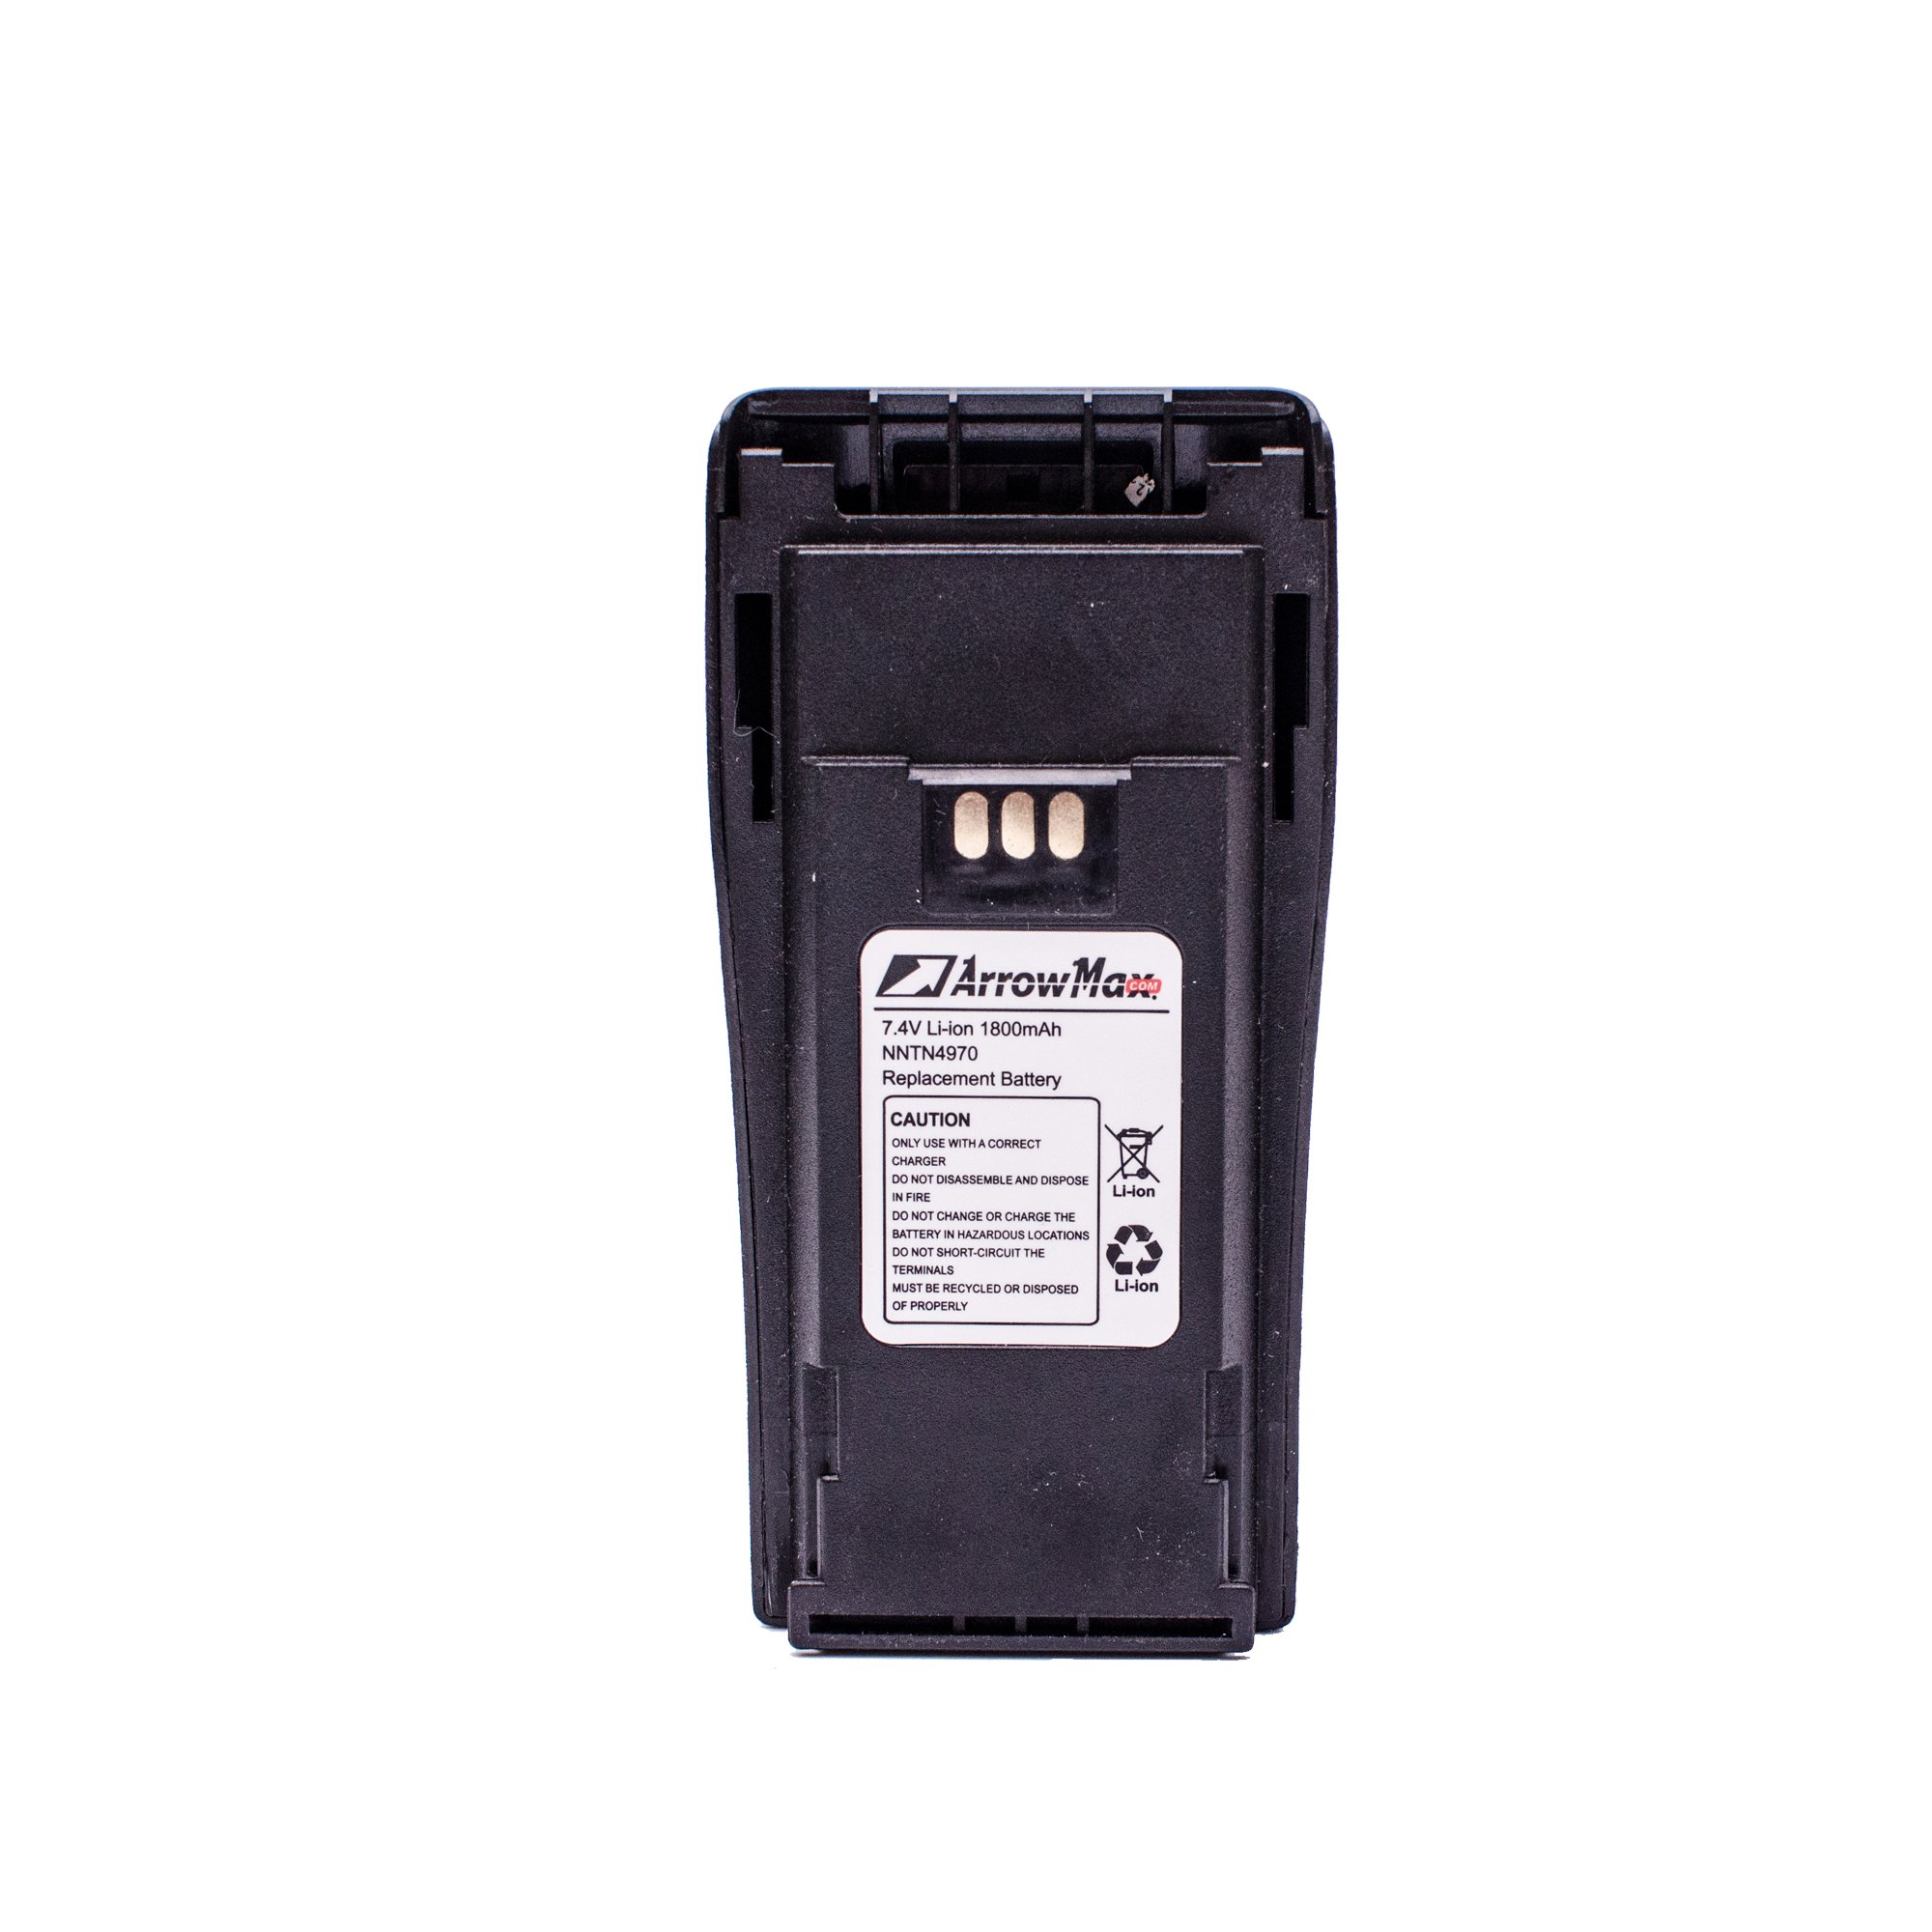 ArrowMax AMCL4970-1800-D NNTN4970 Replacement Li-ion 1800mAh Slim Battery for Motorola CP200 CP200XLS CP200D